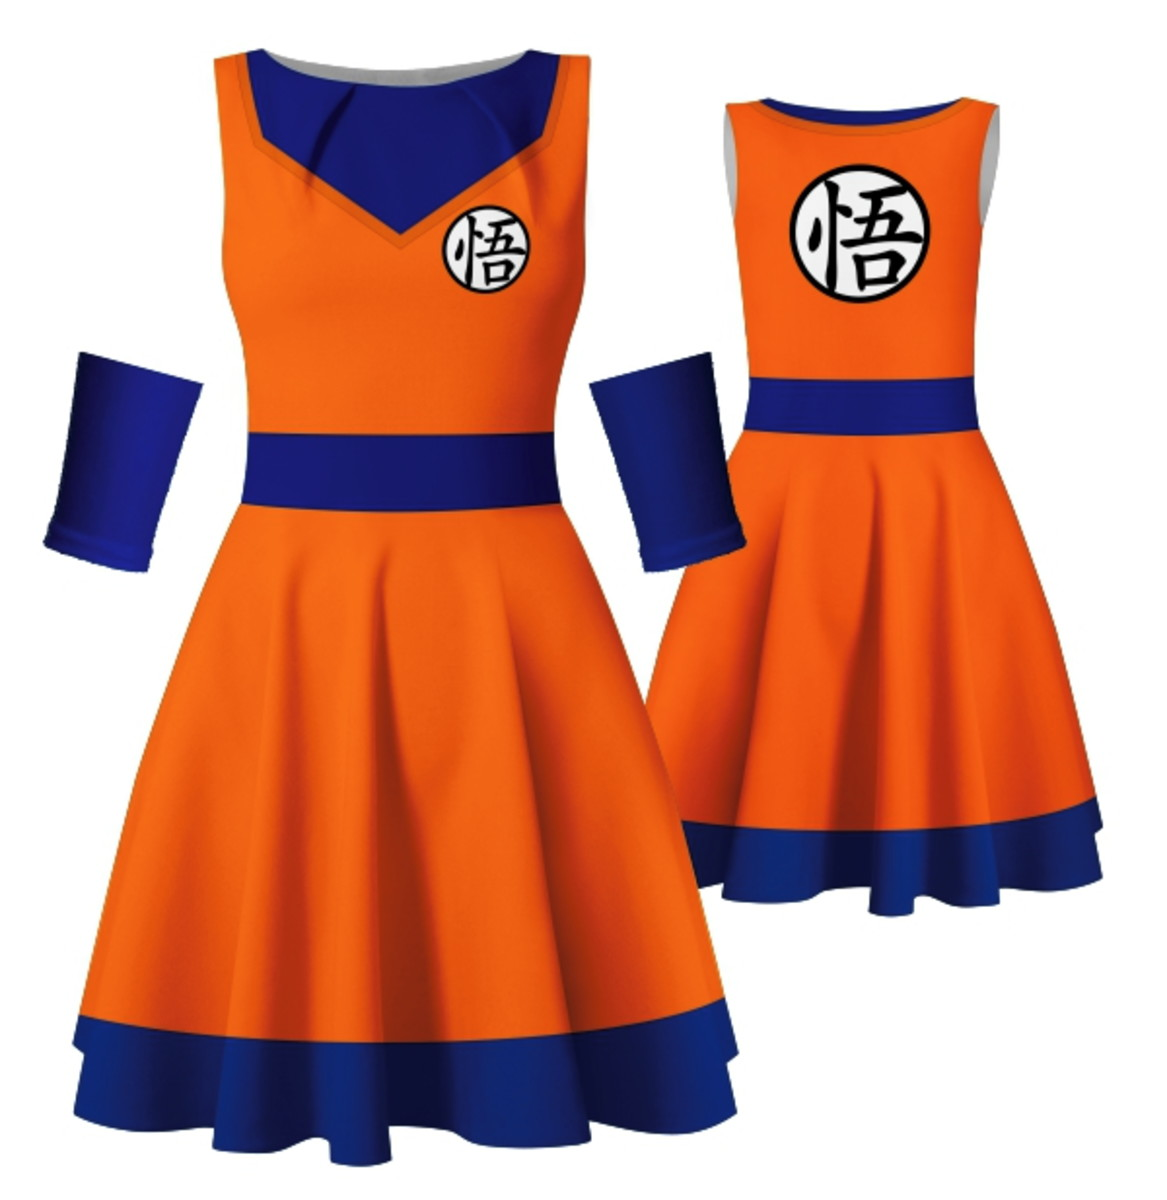 Vestido Goku Dragon Ball Z Cosplay Anime Halloween Fantasia no Elo7 ... 221f1ce444a1